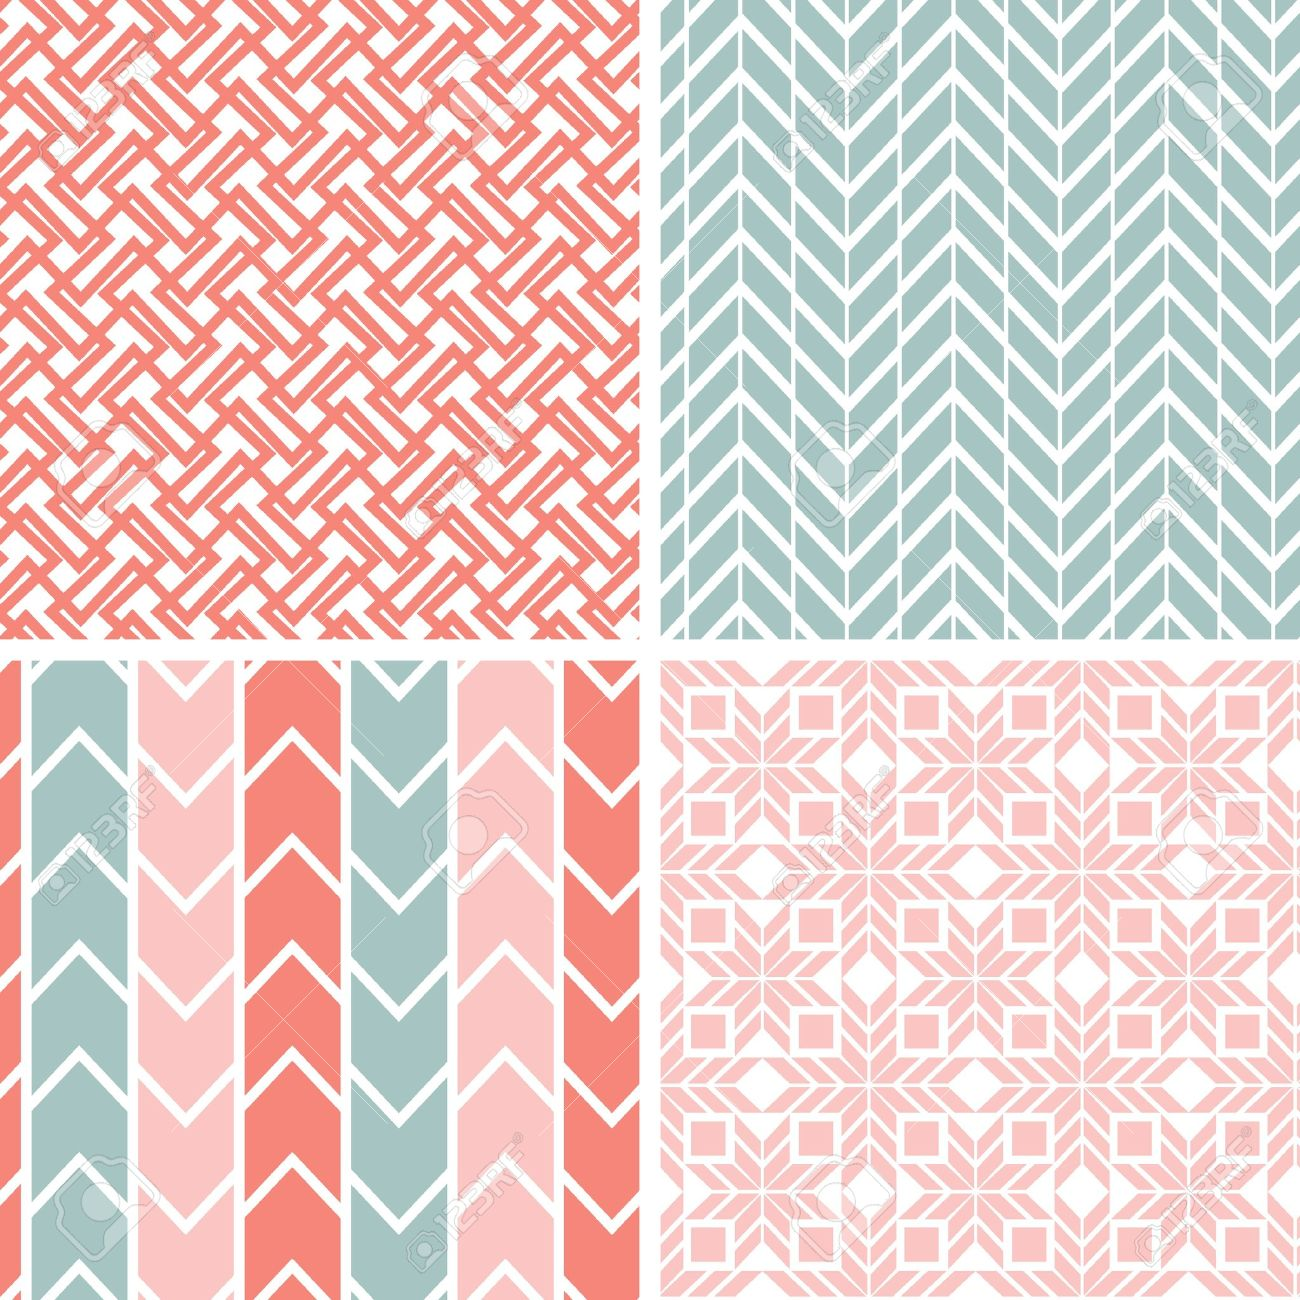 Set of four gray pink geometric patterns and backgrounds Stock Vector - 19935278